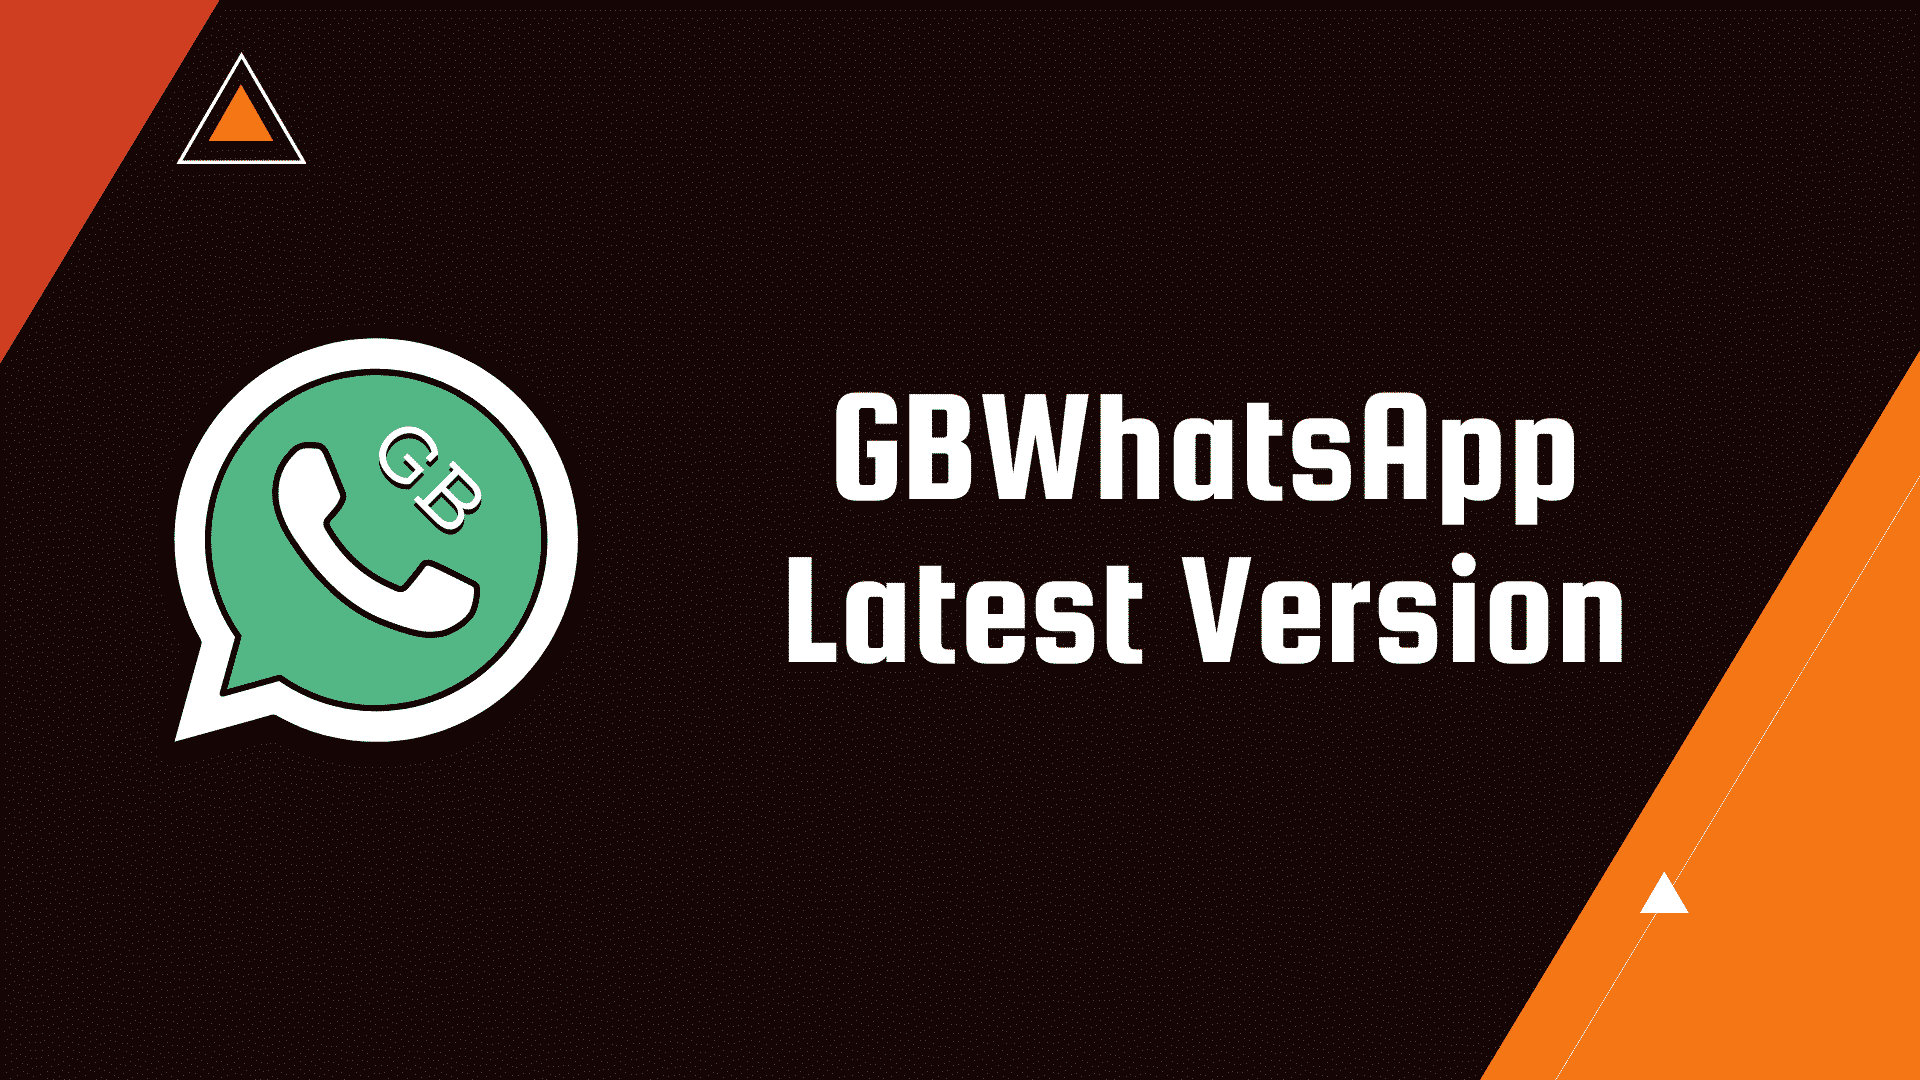 GBWhatsApp Latest Version